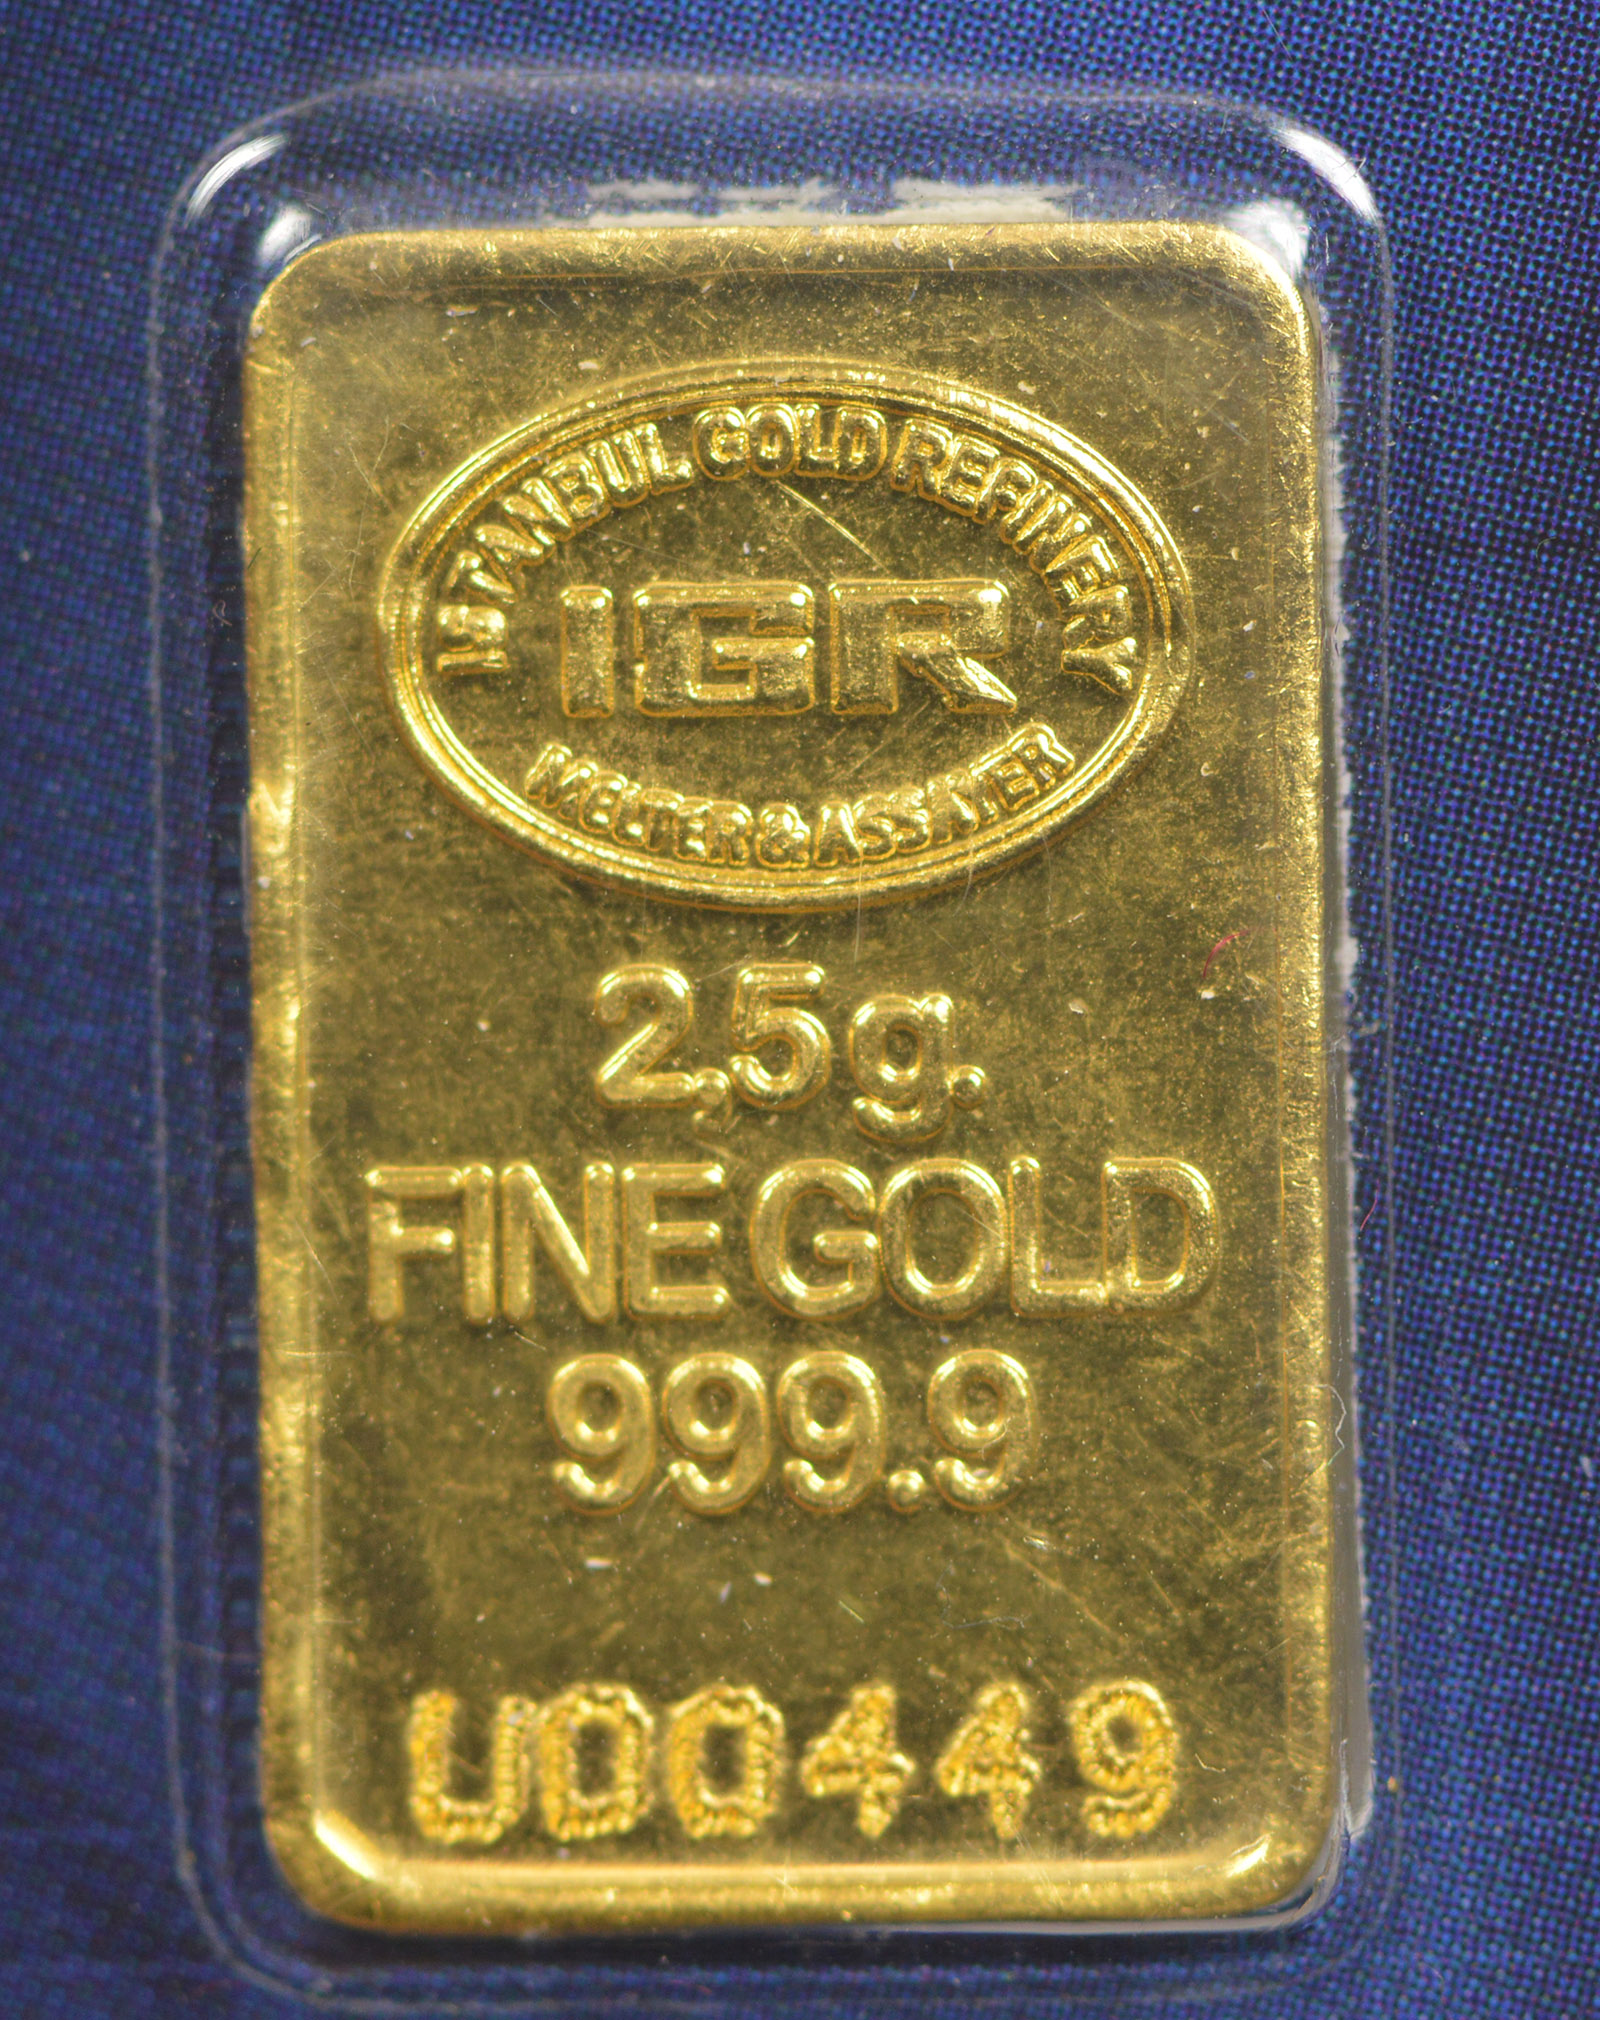 2 5 Gram 24k 9999 Pure Gold Bar Goldgram Sealed With